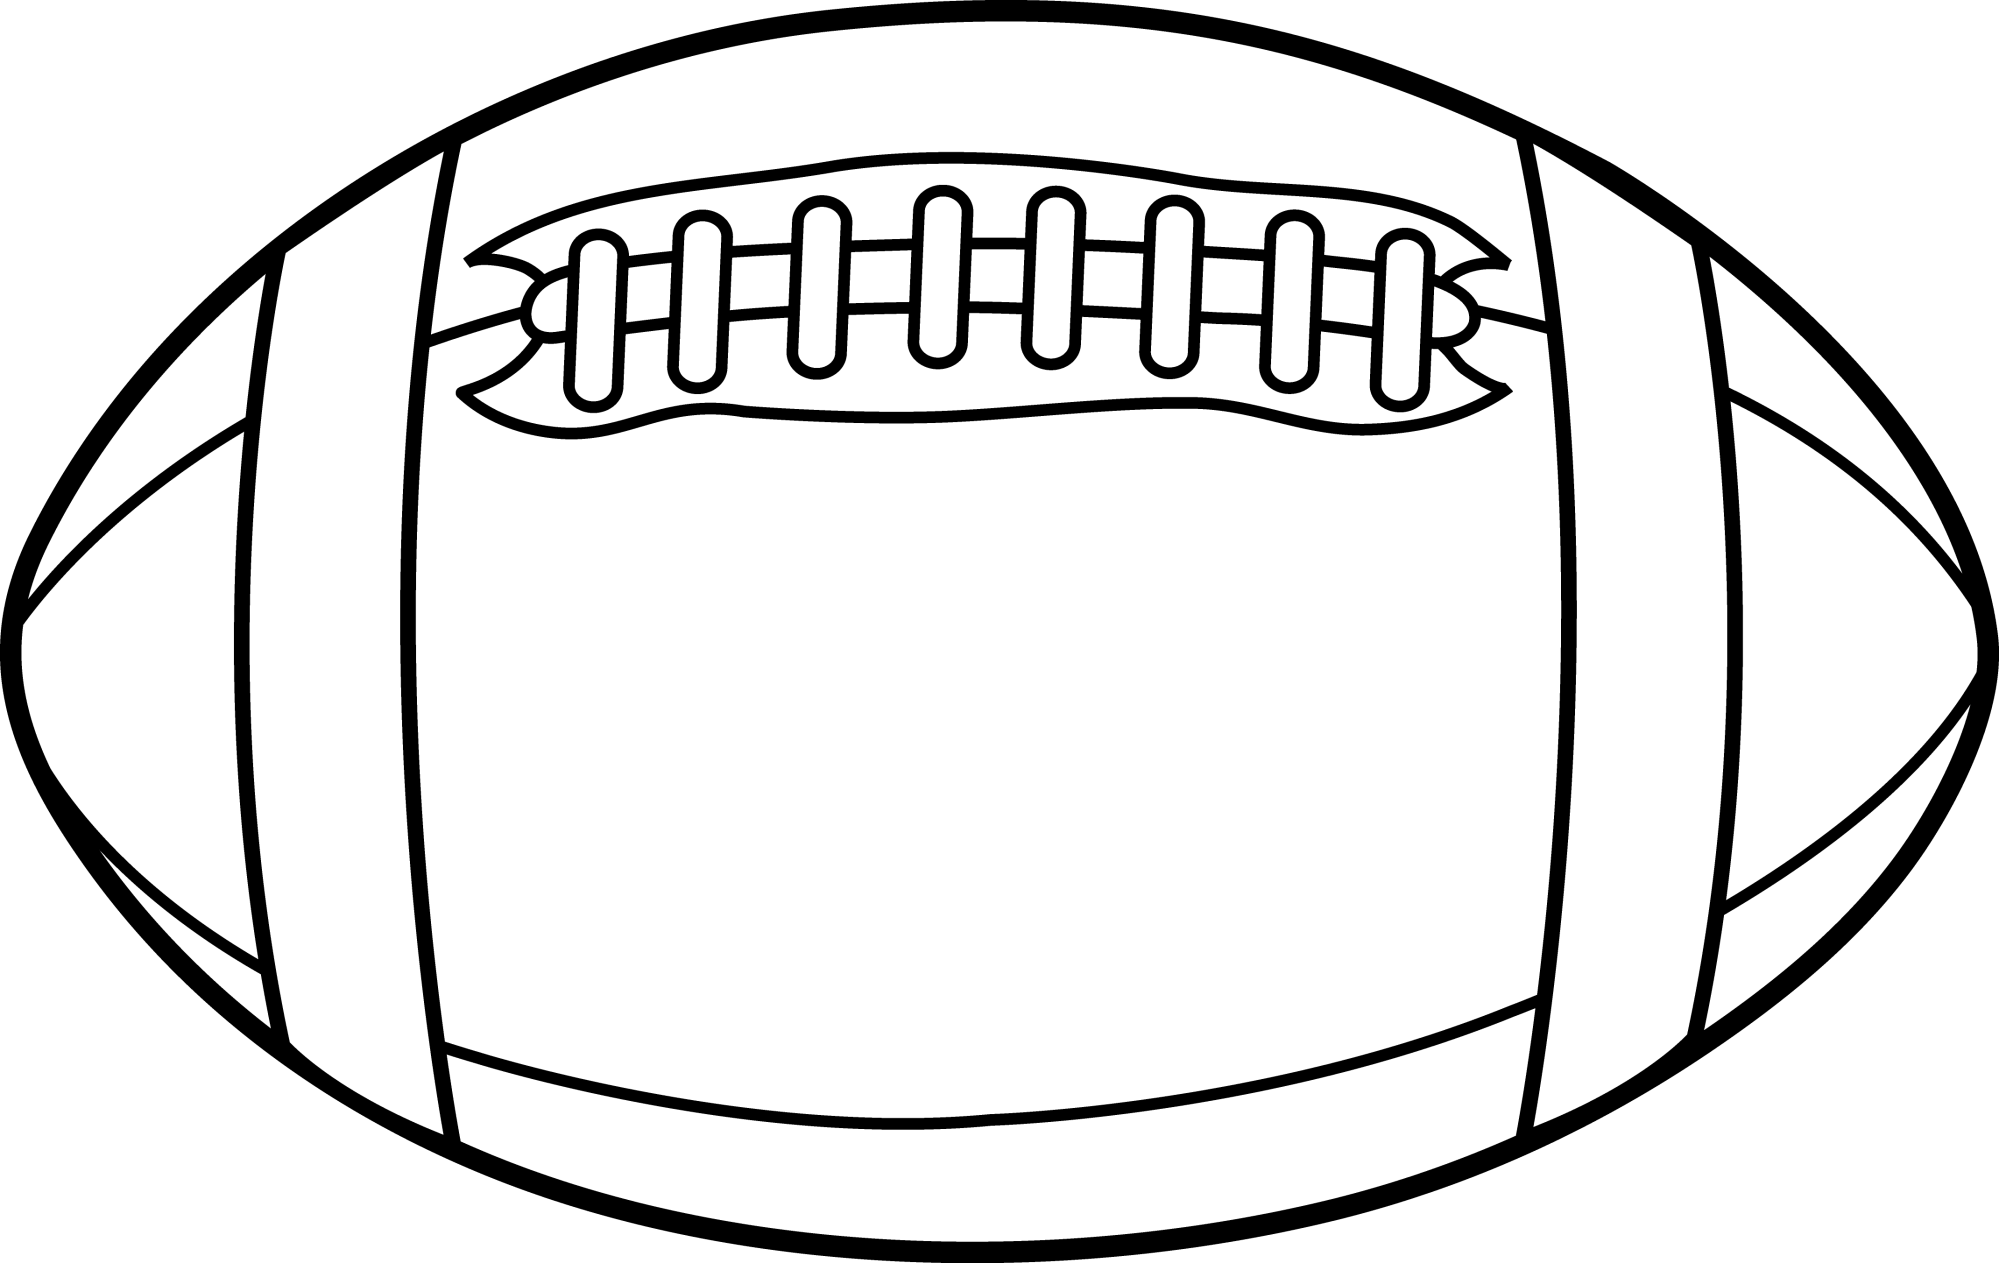 hight resolution of american football clipart black and white